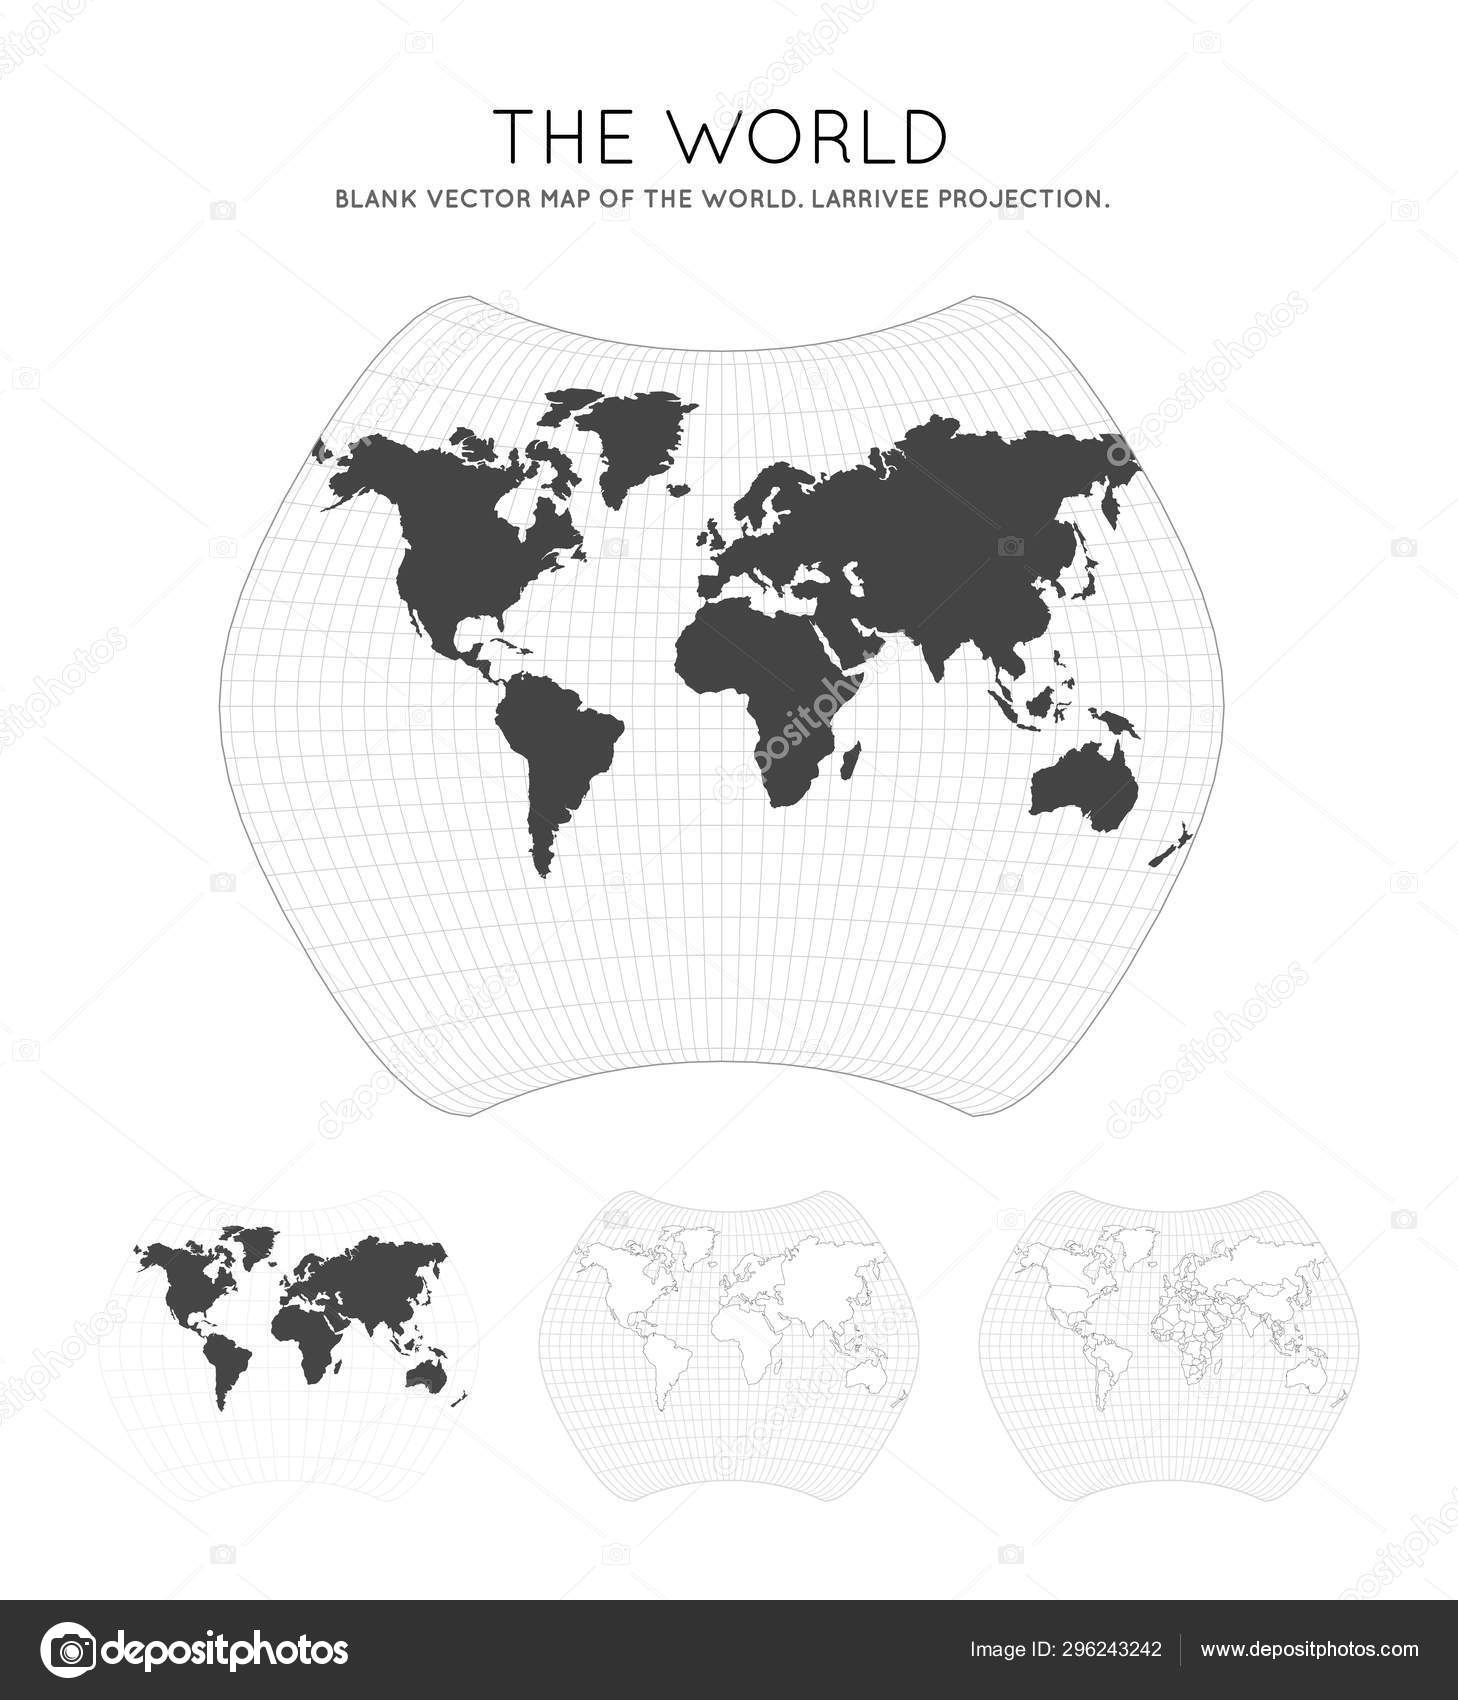 Picture of: Map Of The World Larrivee Projection Globe With Latitude And Longitude Lines World Map On Stock Vector C Gagarych 296243242